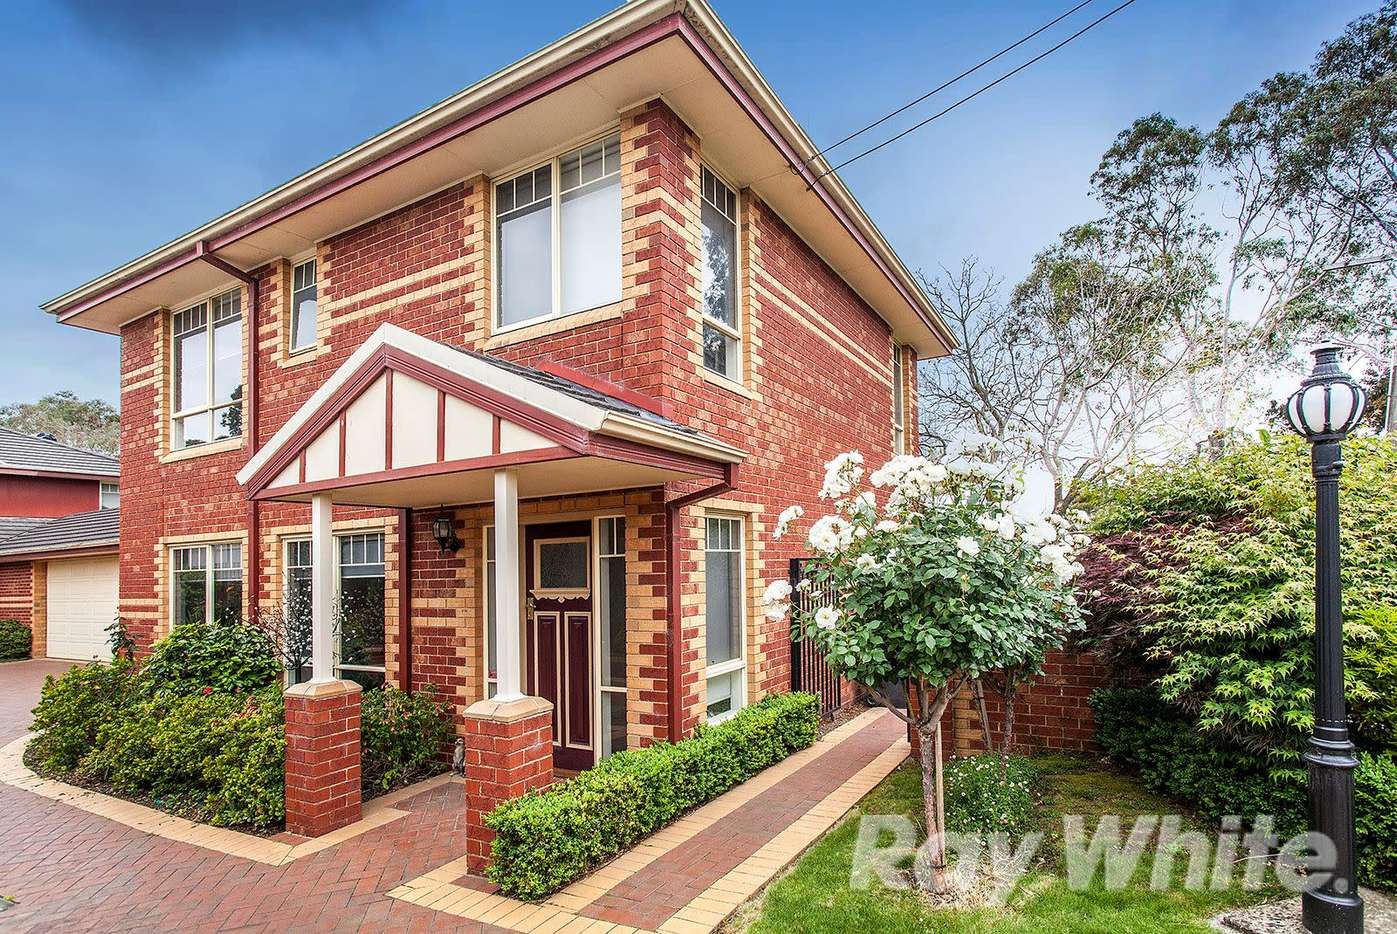 Main view of Homely townhouse listing, 1/27 White Road, Wantirna South, VIC 3152